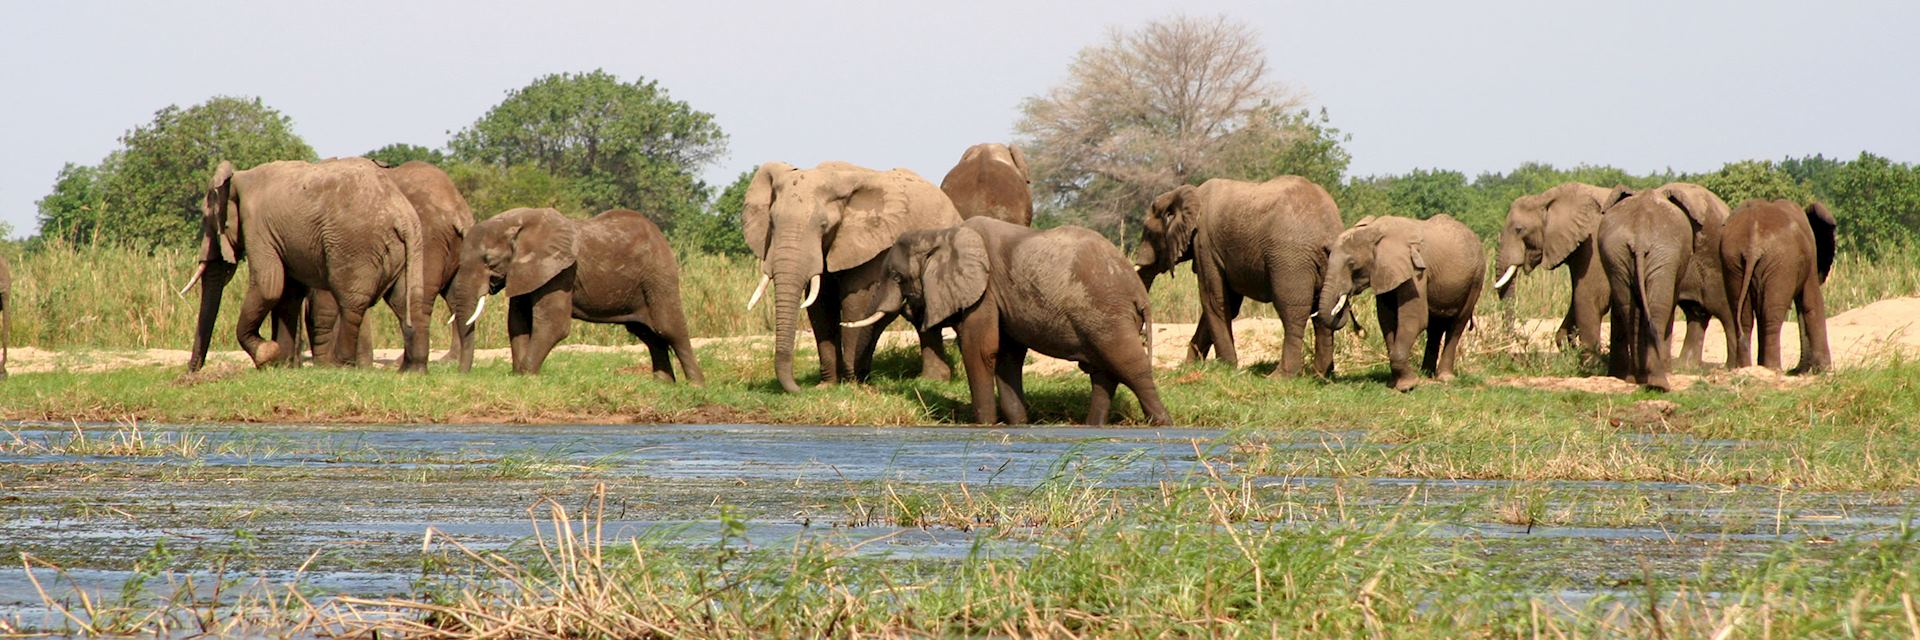 Elephants in Lower Zambezi National Park